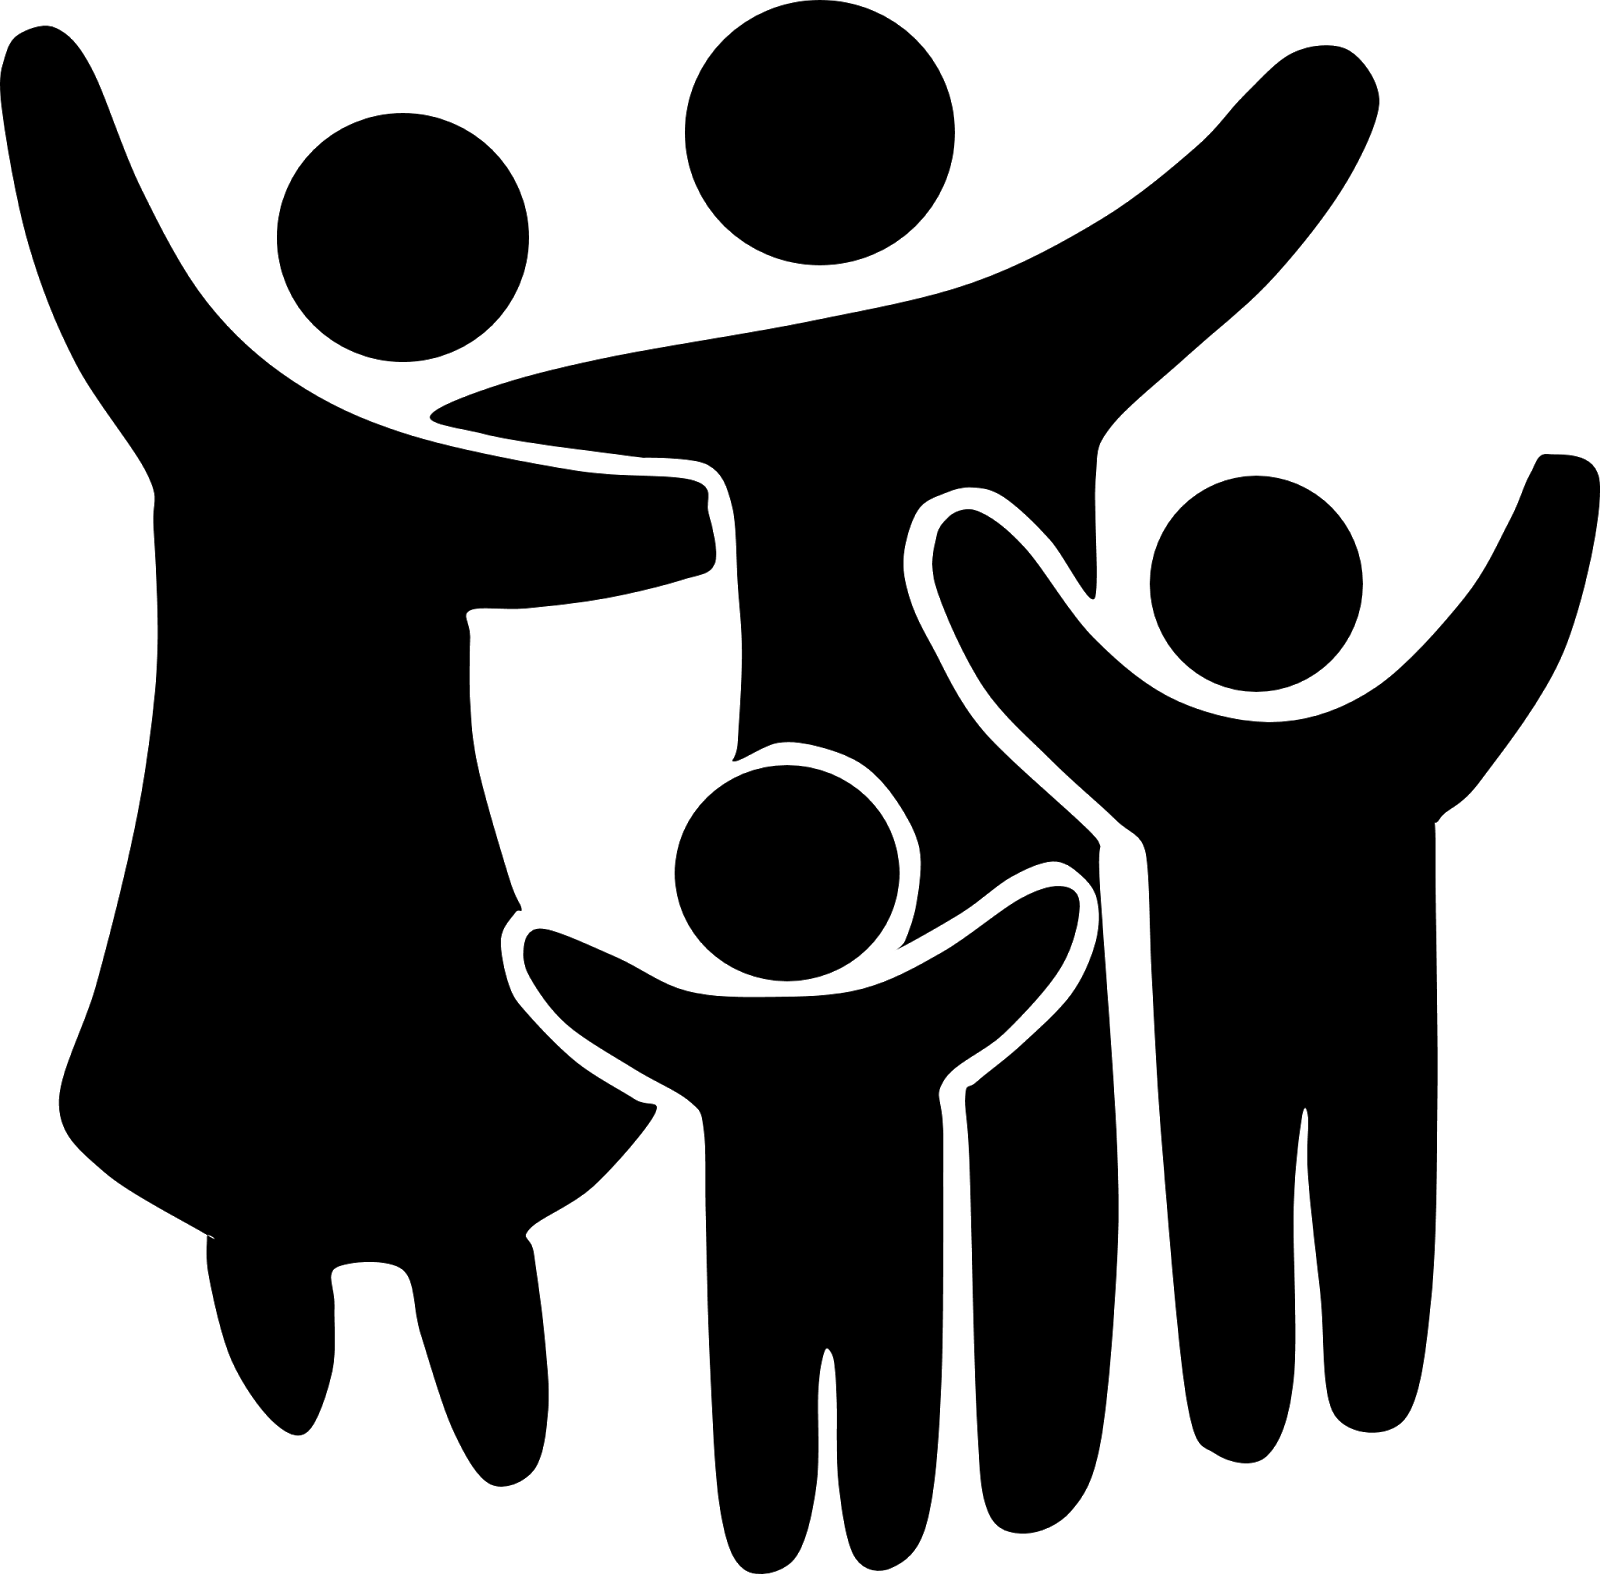 hight resolution of black and white family clipart